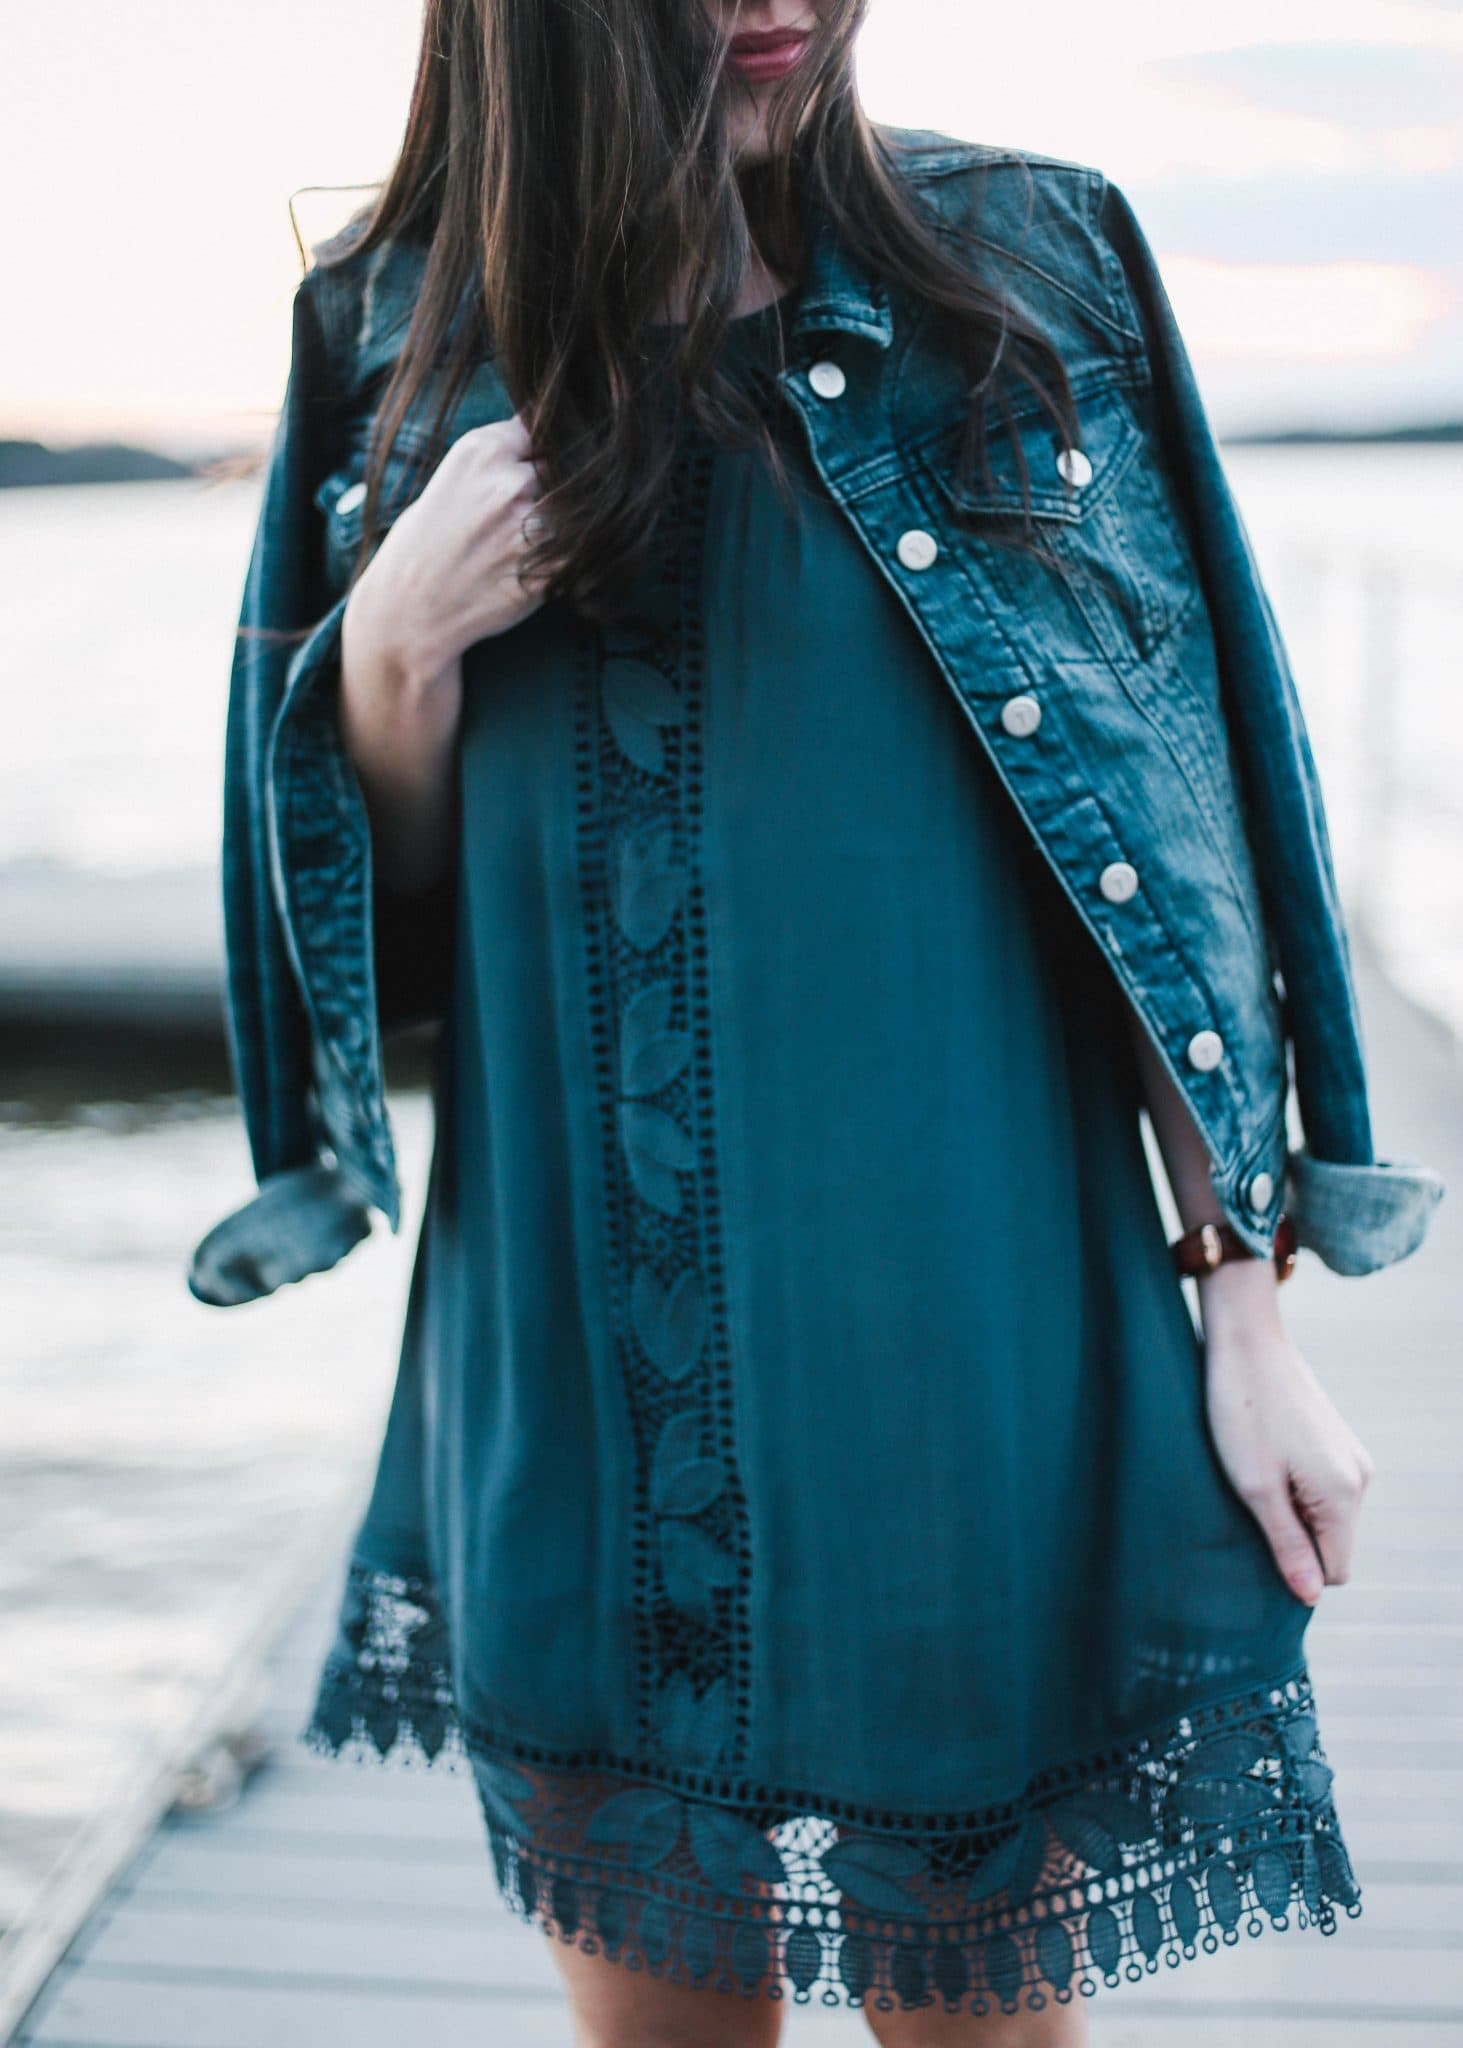 denim jacket pilcro anthropologie, LOFT lace dress